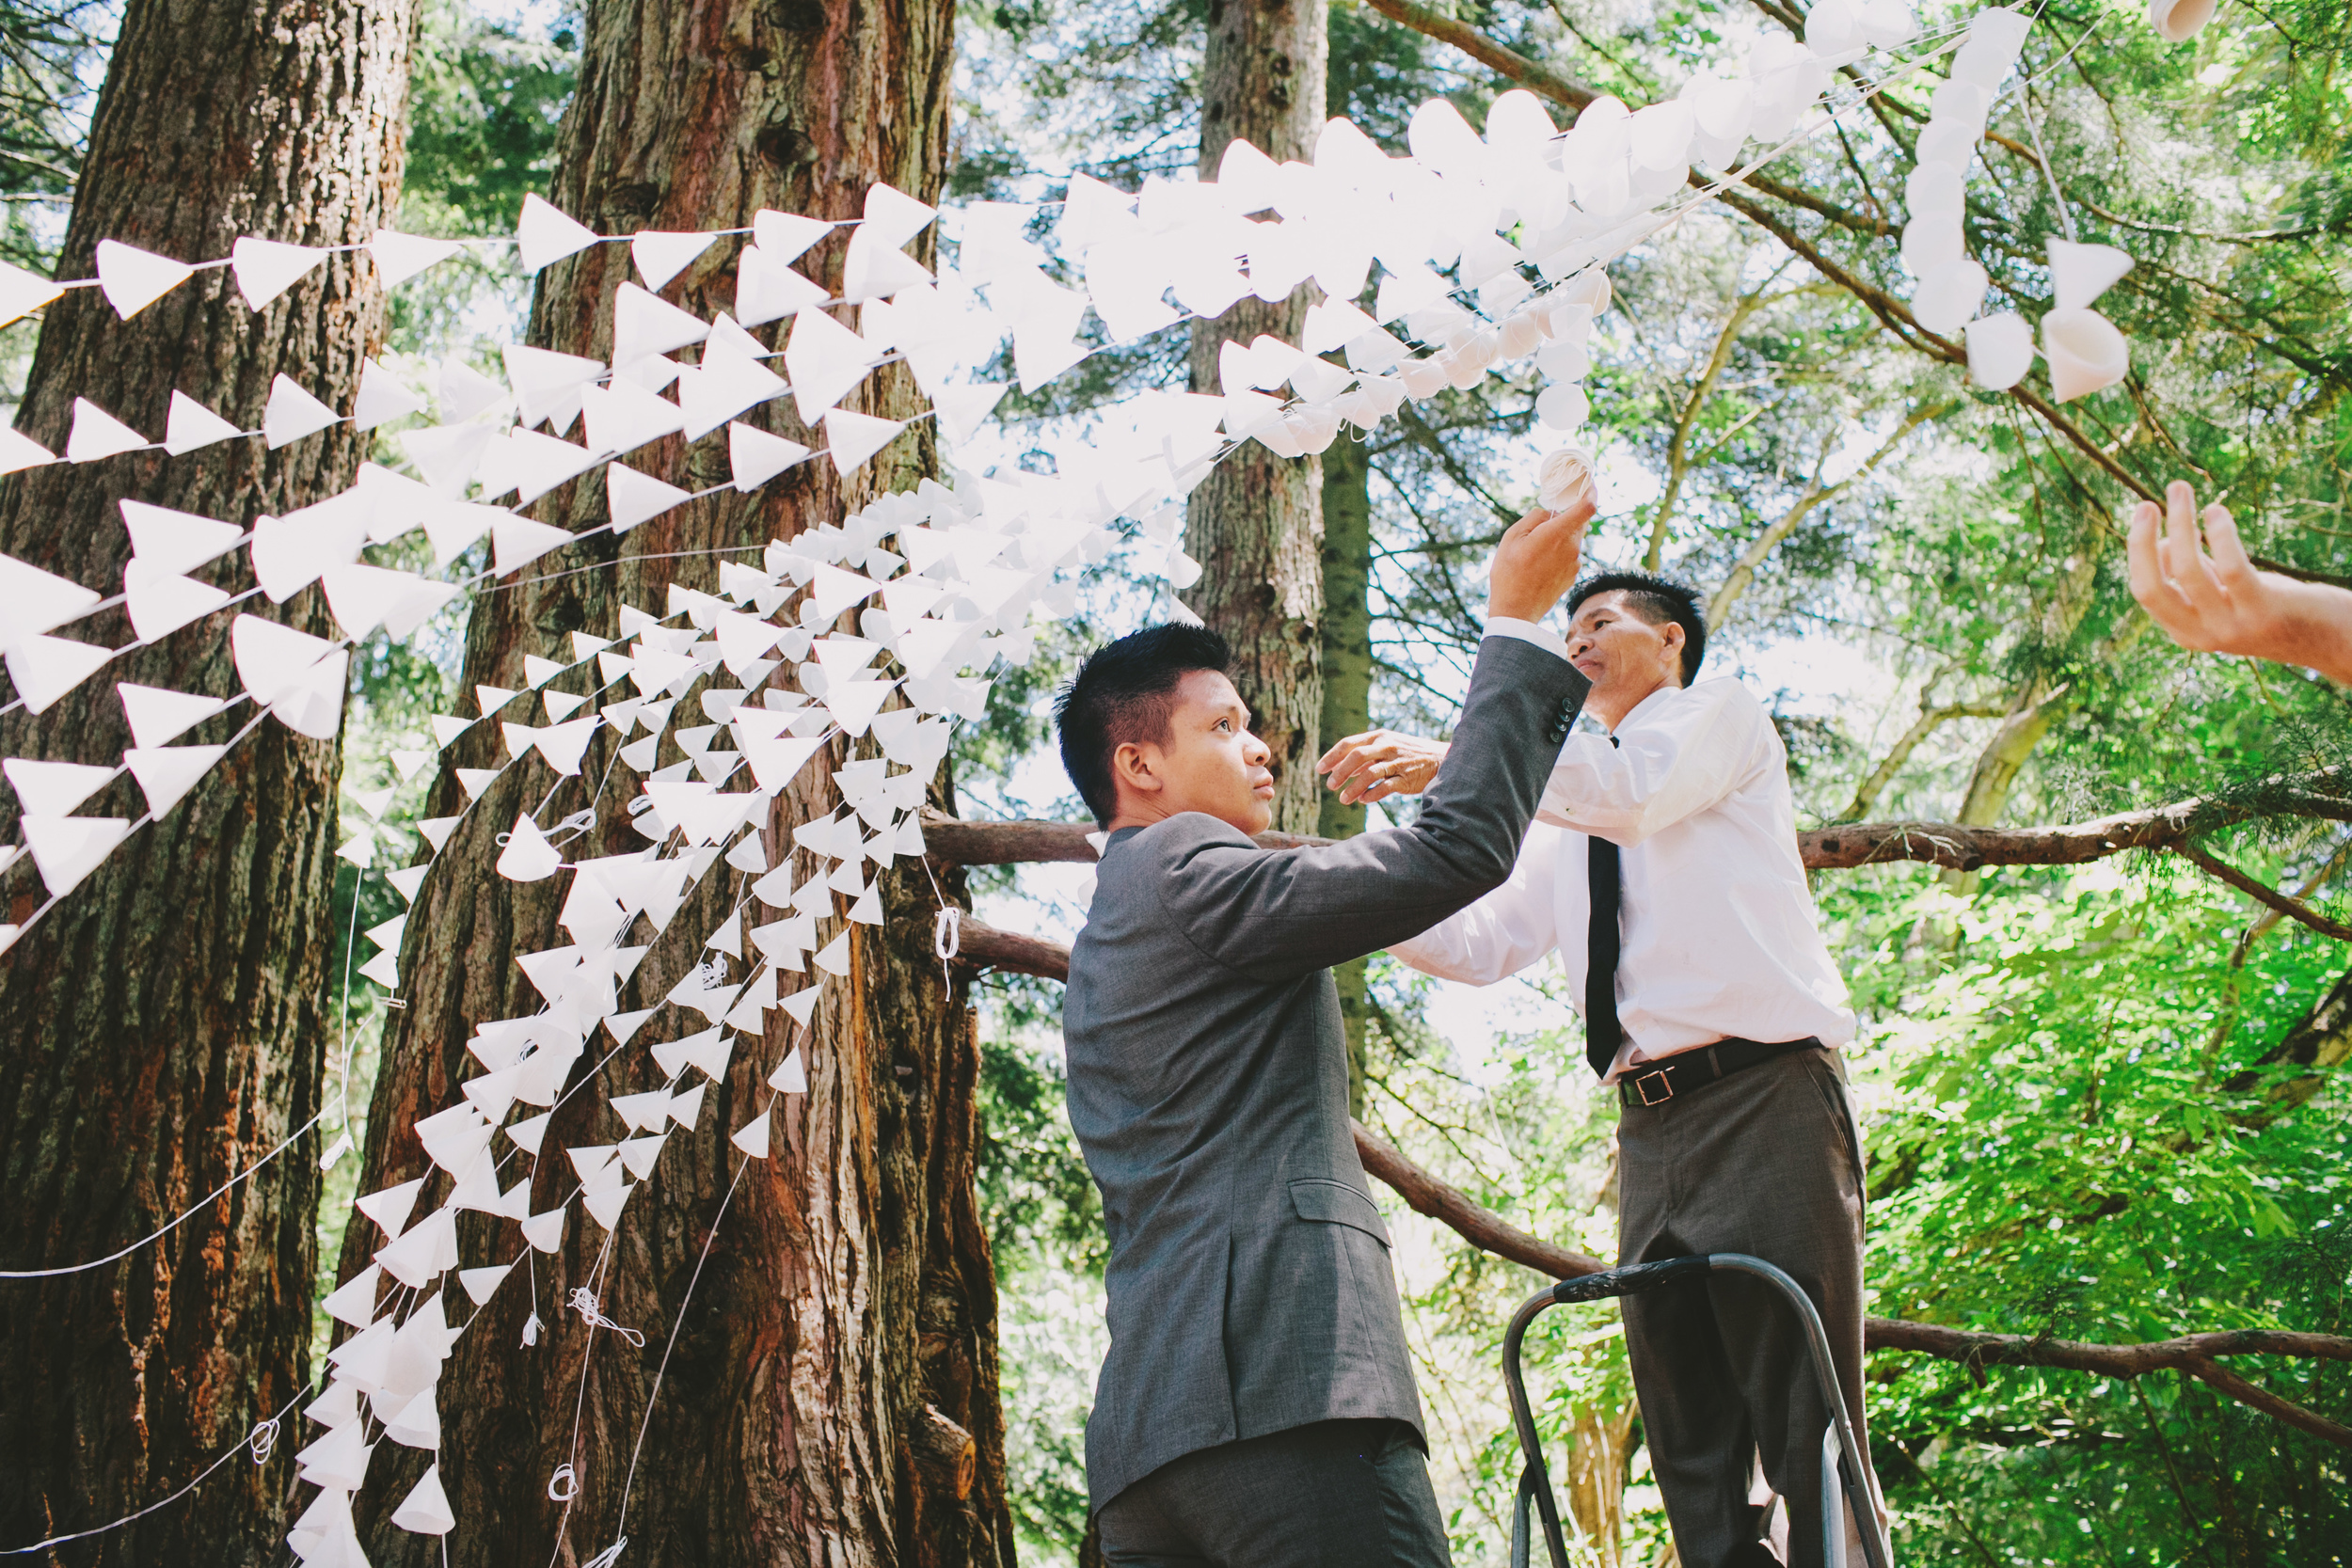 Tilden_Wedding_Berkeley-01.JPG